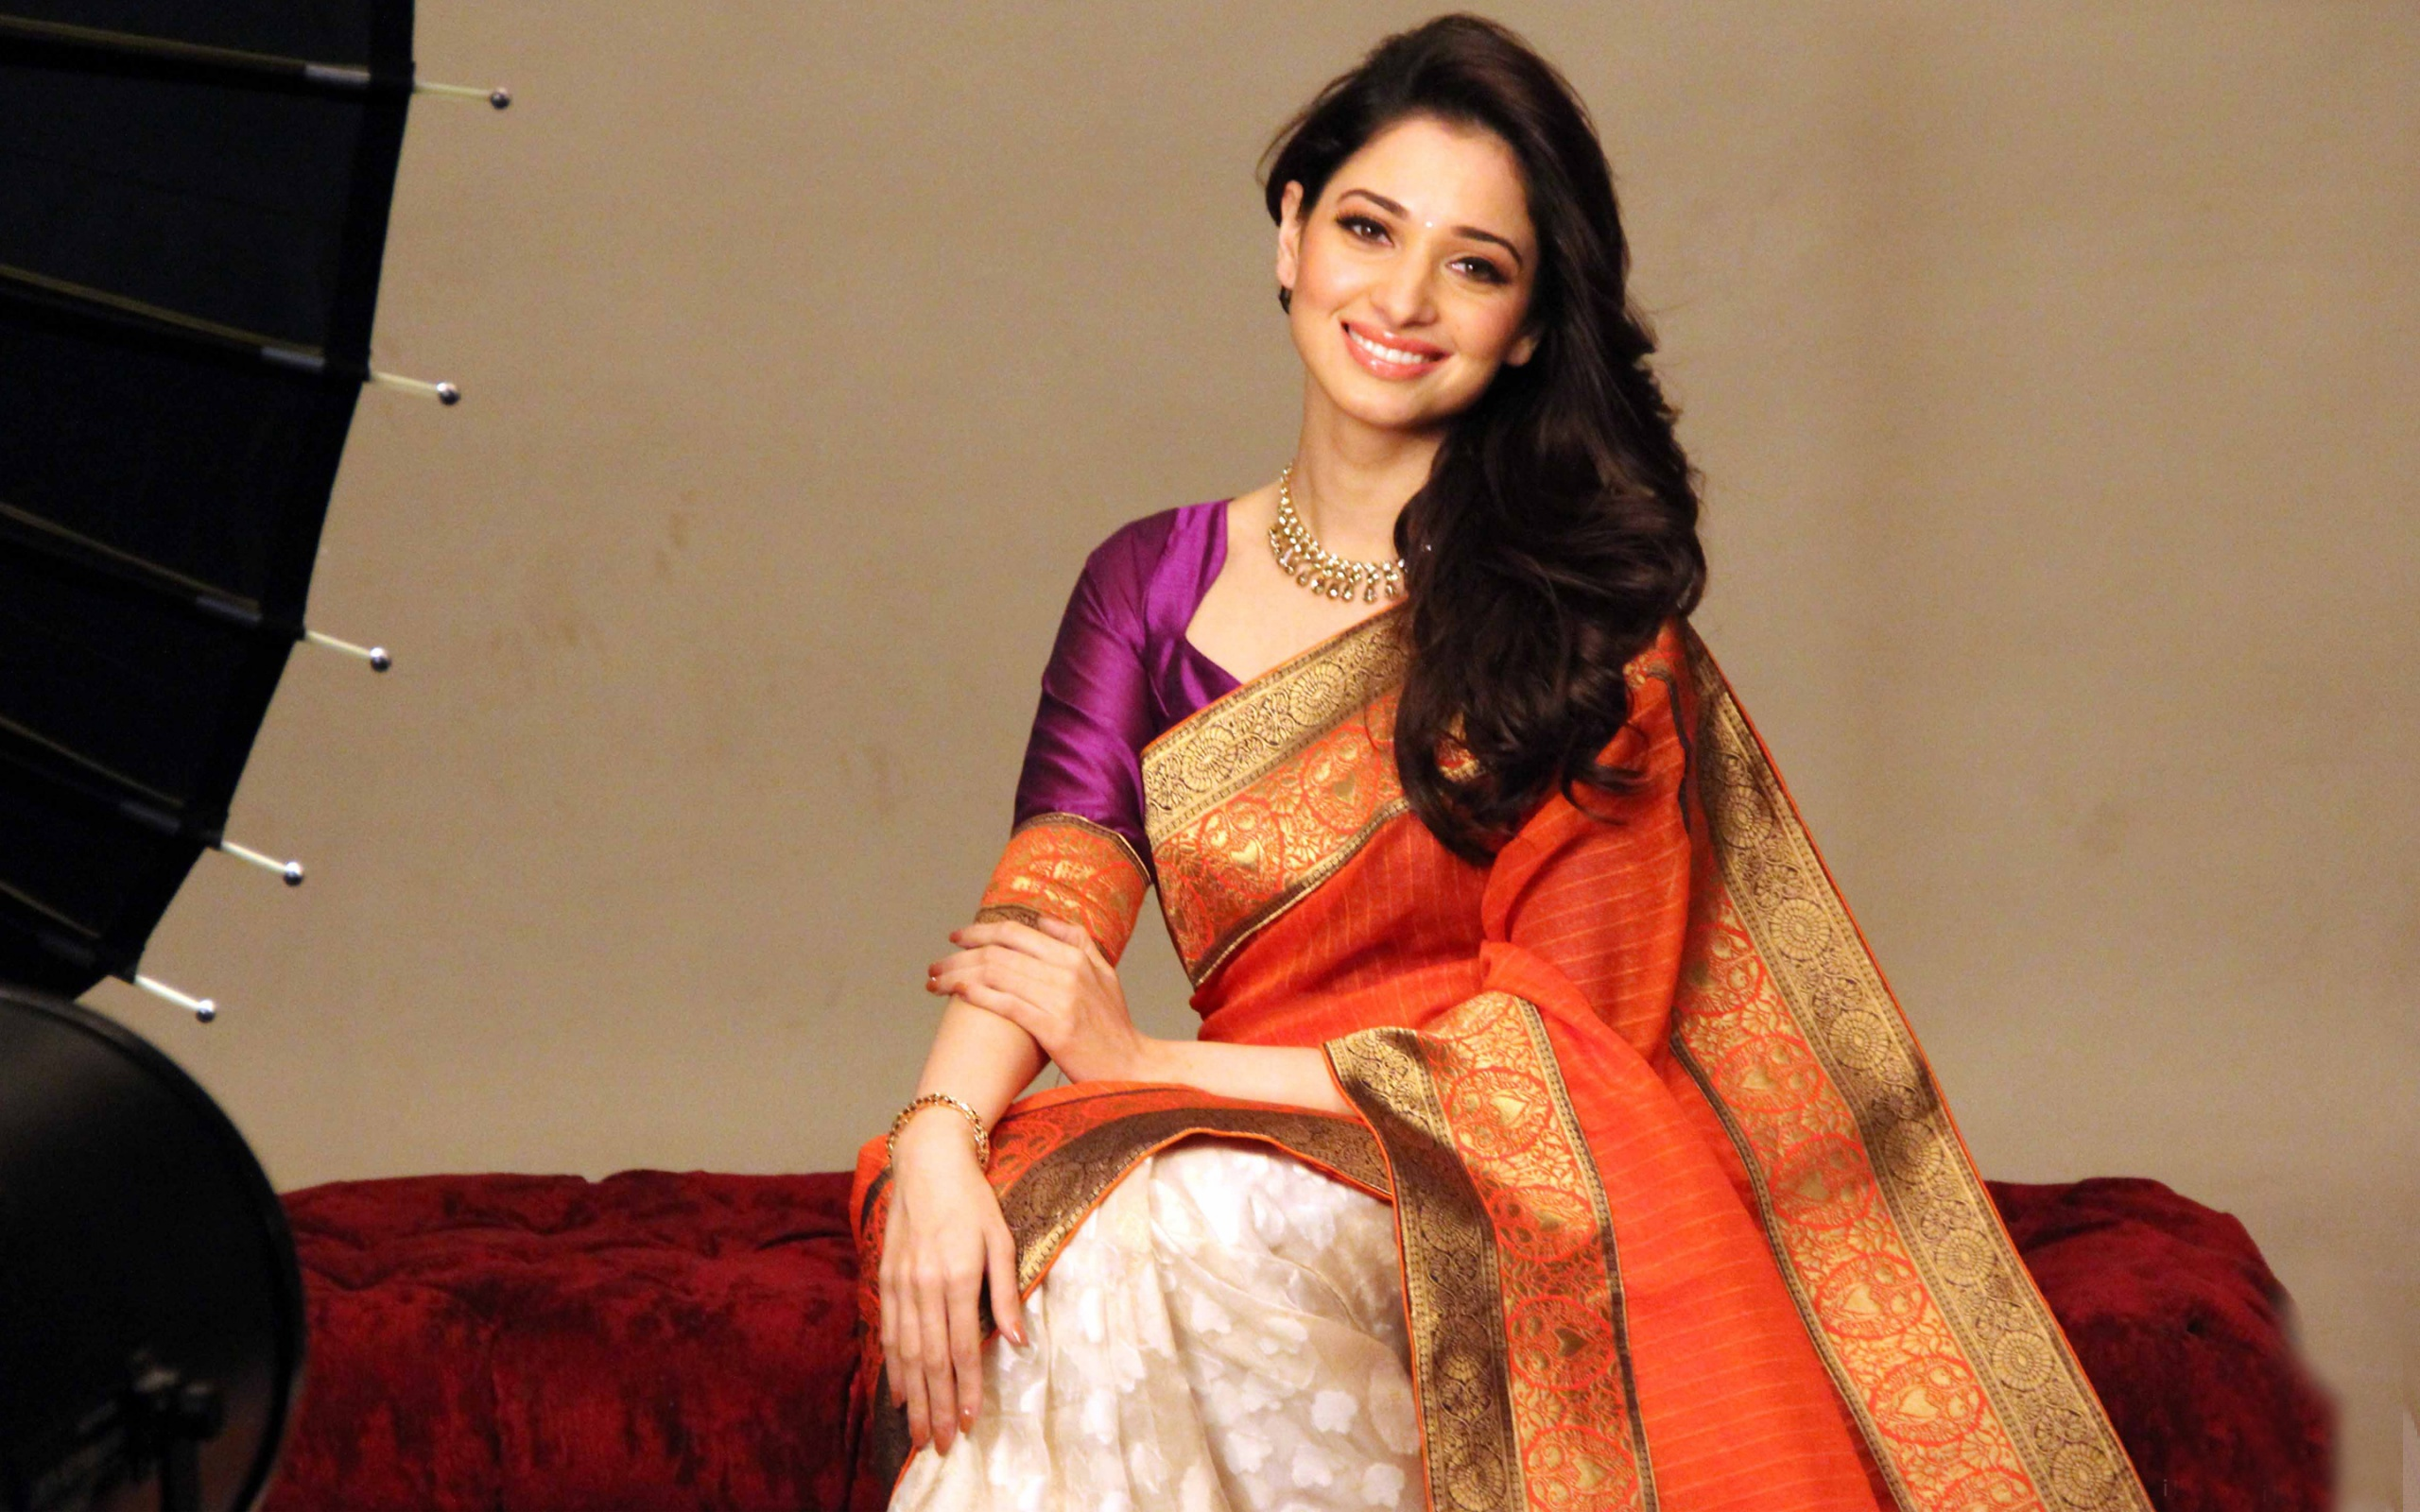 Tamanna Hd Saree Wallpaper: Indian Girl Tamanna In Saree Wallpapers